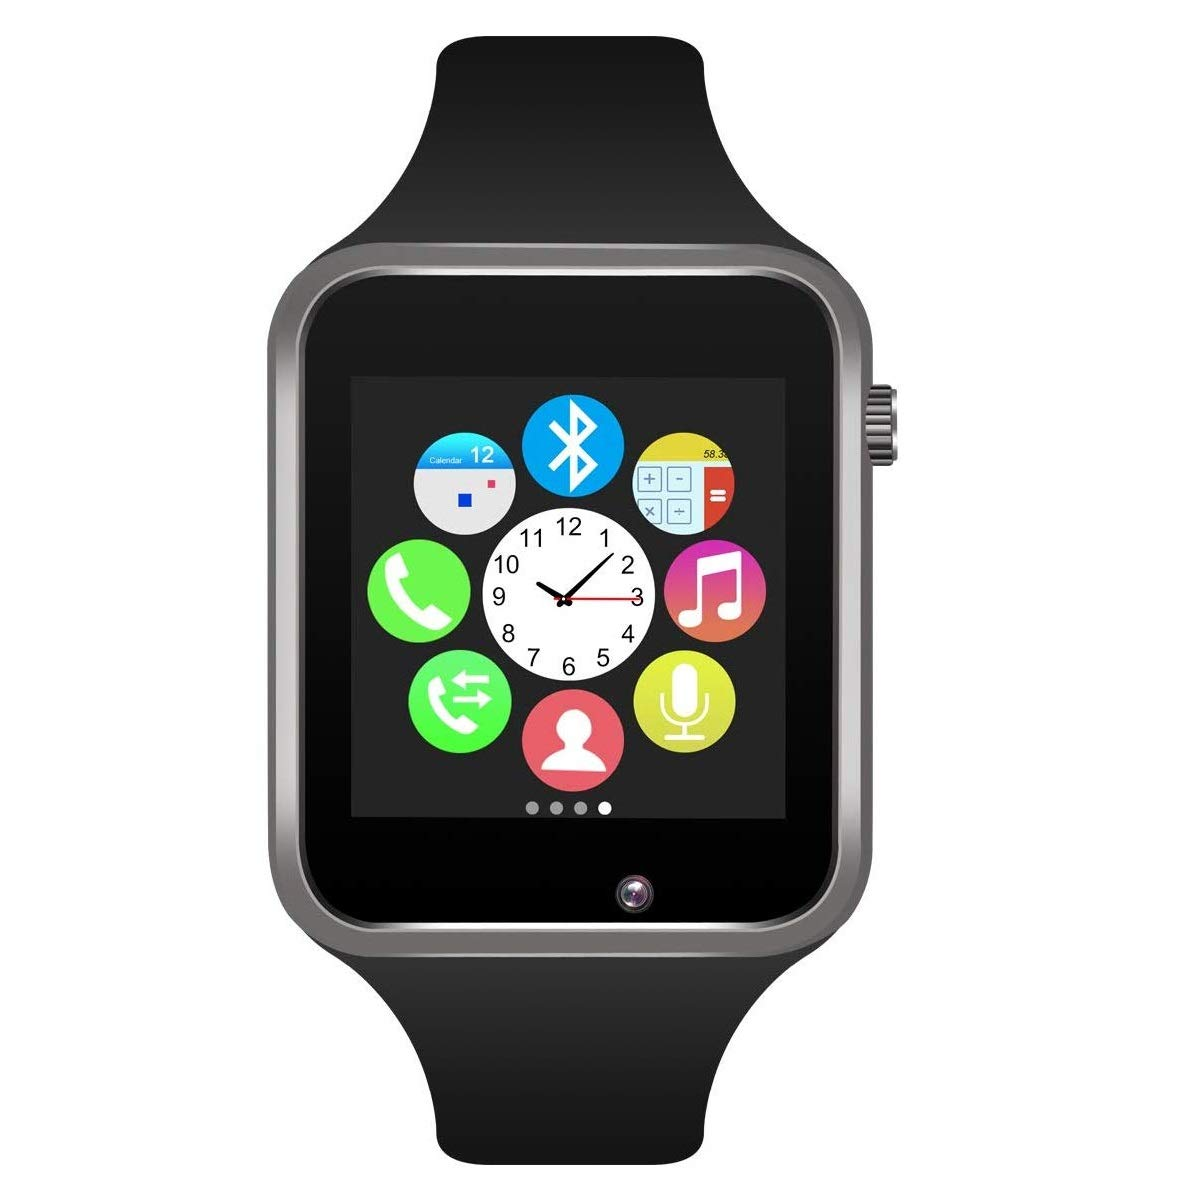 Aeifond Smart Watch Touchscreen Smartwatch